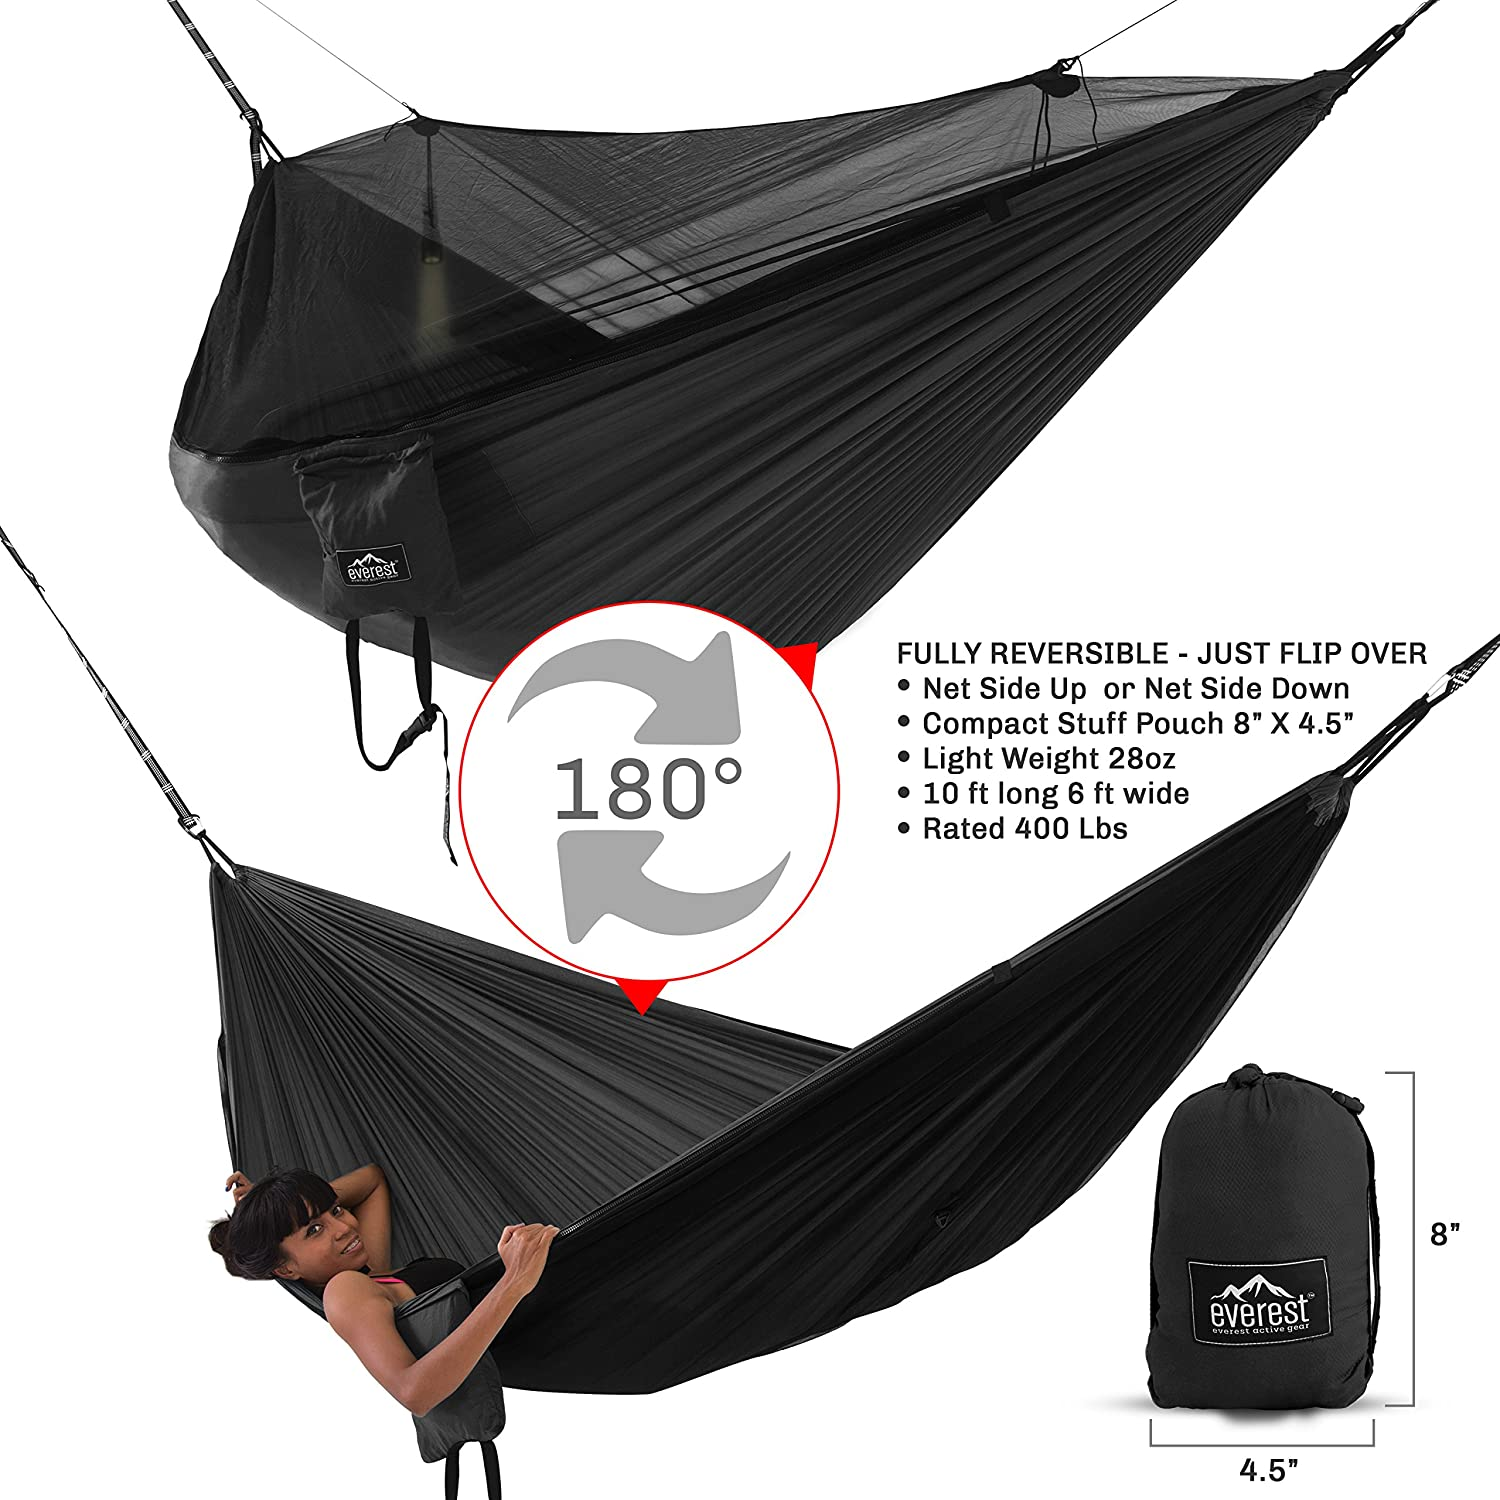 Everest Double Camping Hammock with Mosquito Net Bug-Free Camping, Backpacking Survival Outdoor Hammock Tent Reversible, Integrated, Lightweight, Ripstop Nylon